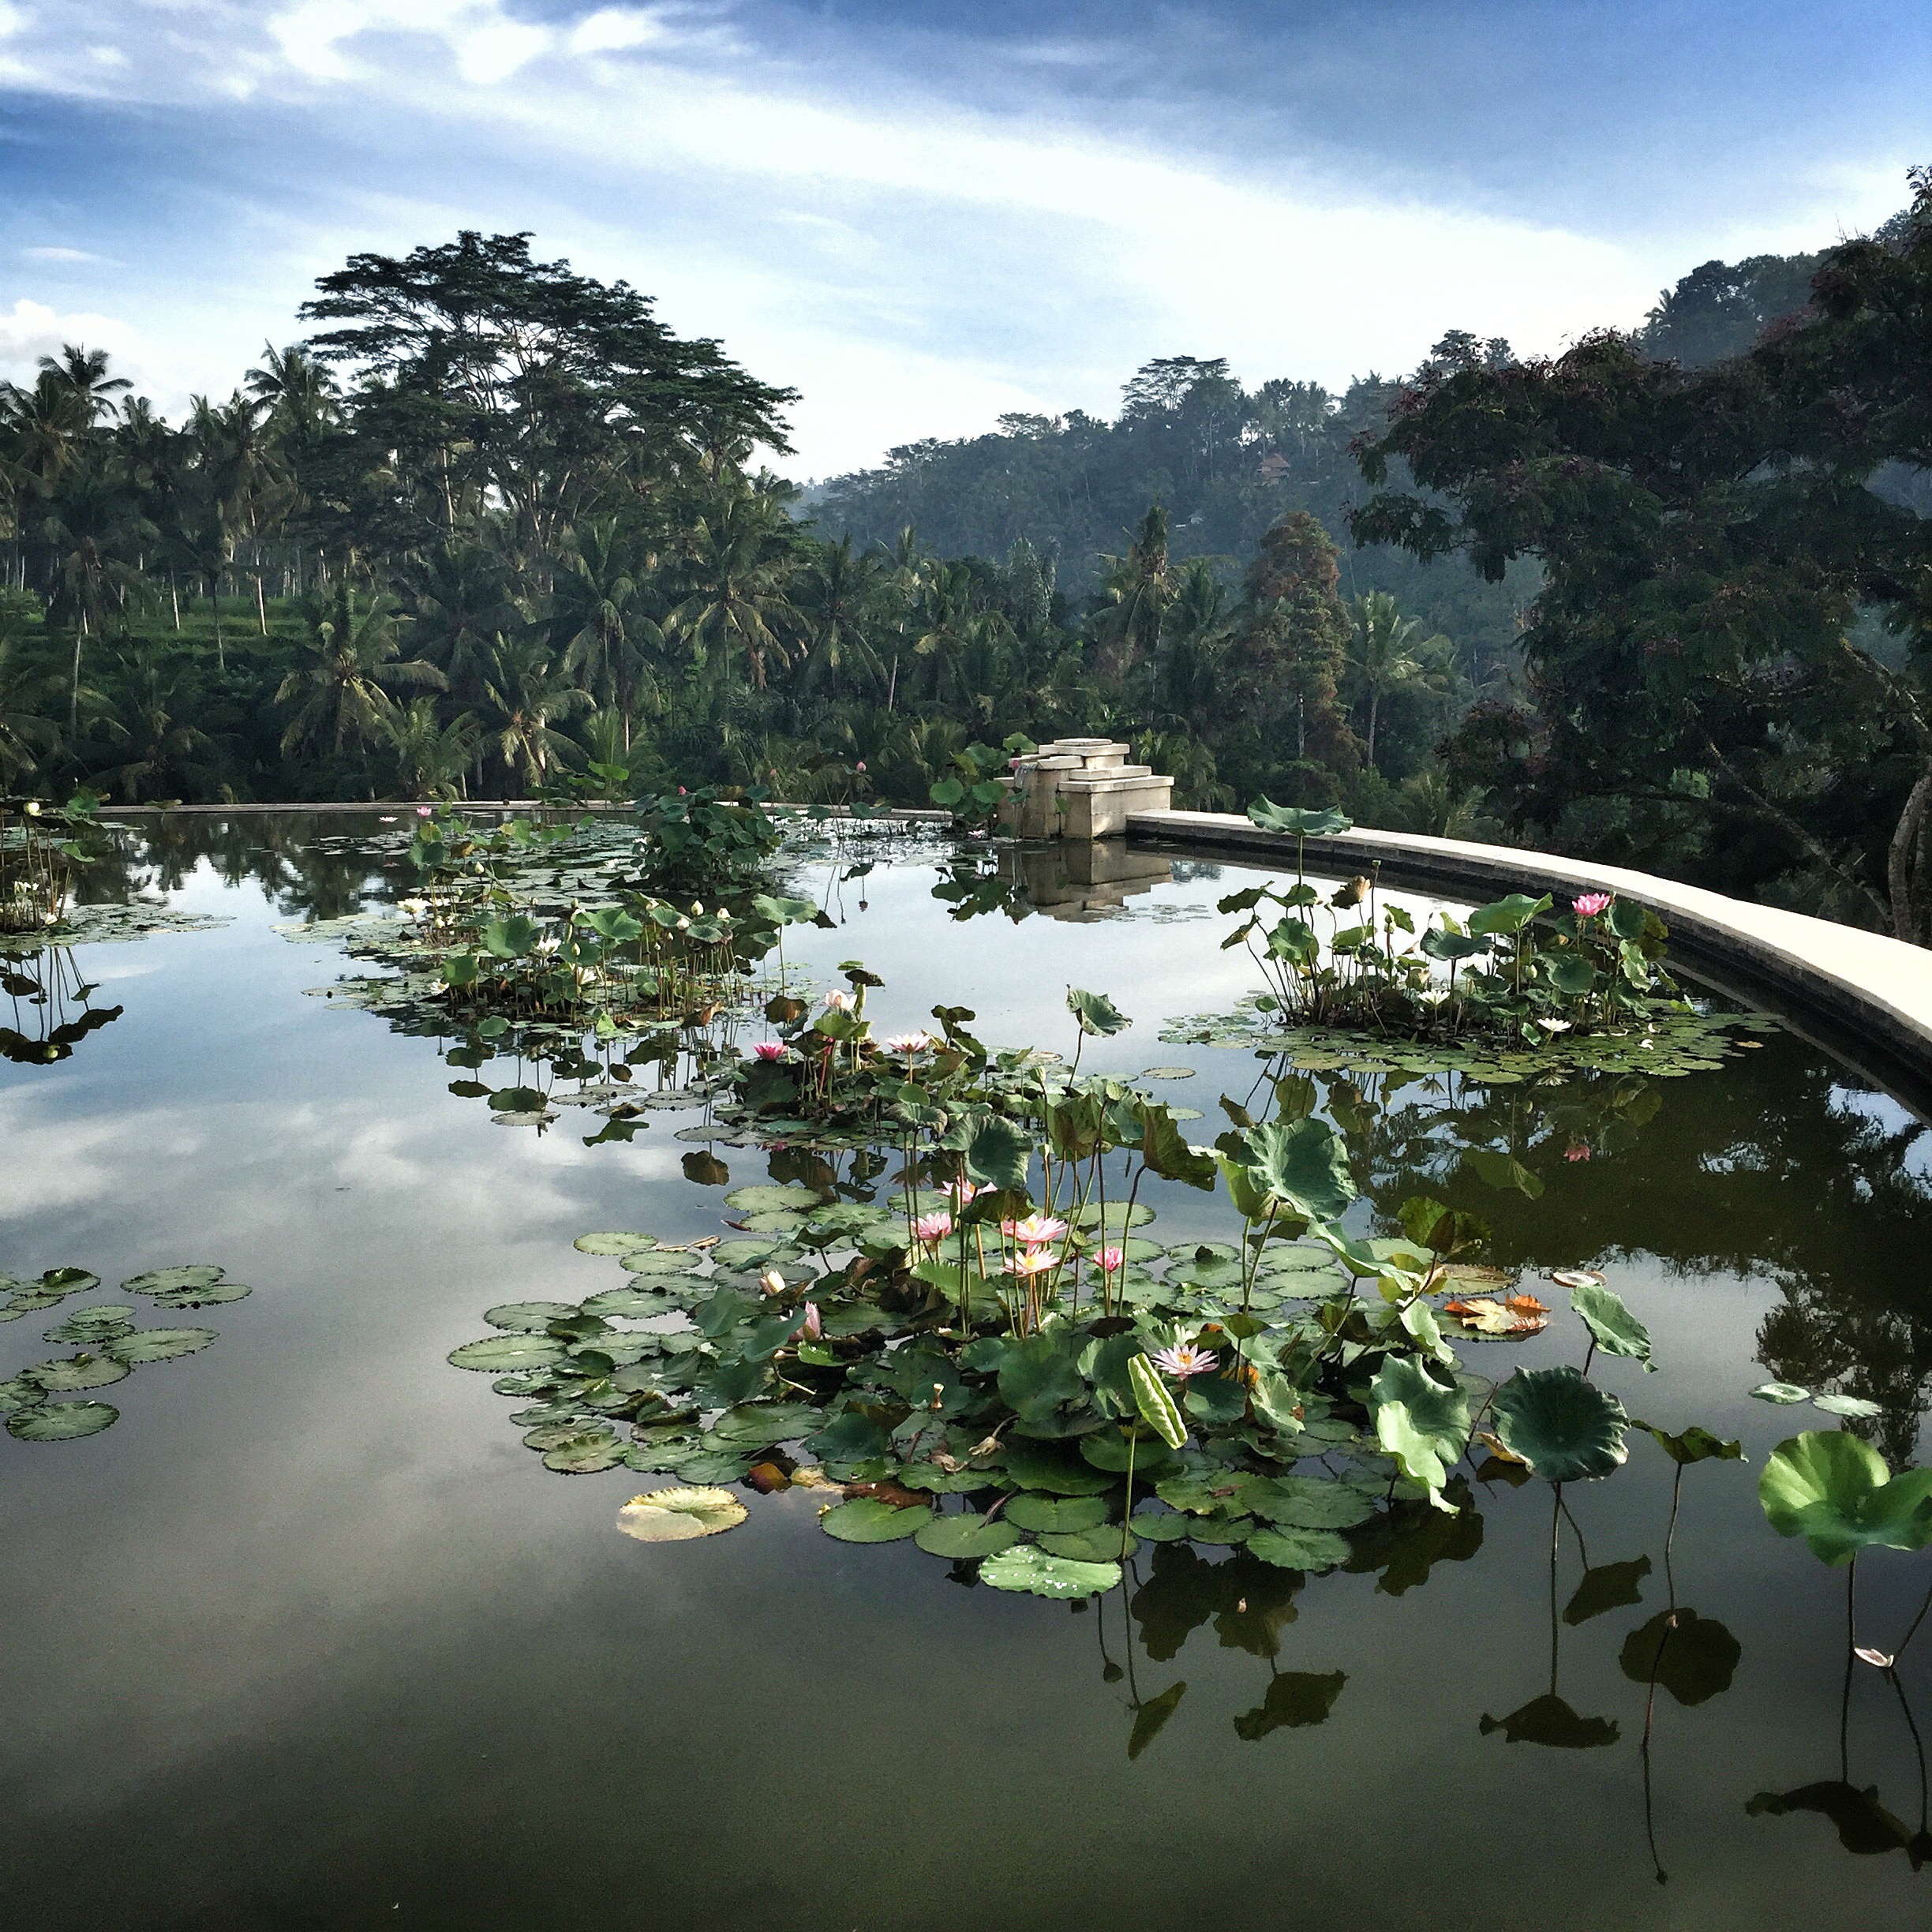 The Lotus Pond at Four Seasons | EAT.PRAY.MOVE Yoga | Bali, Indonesia